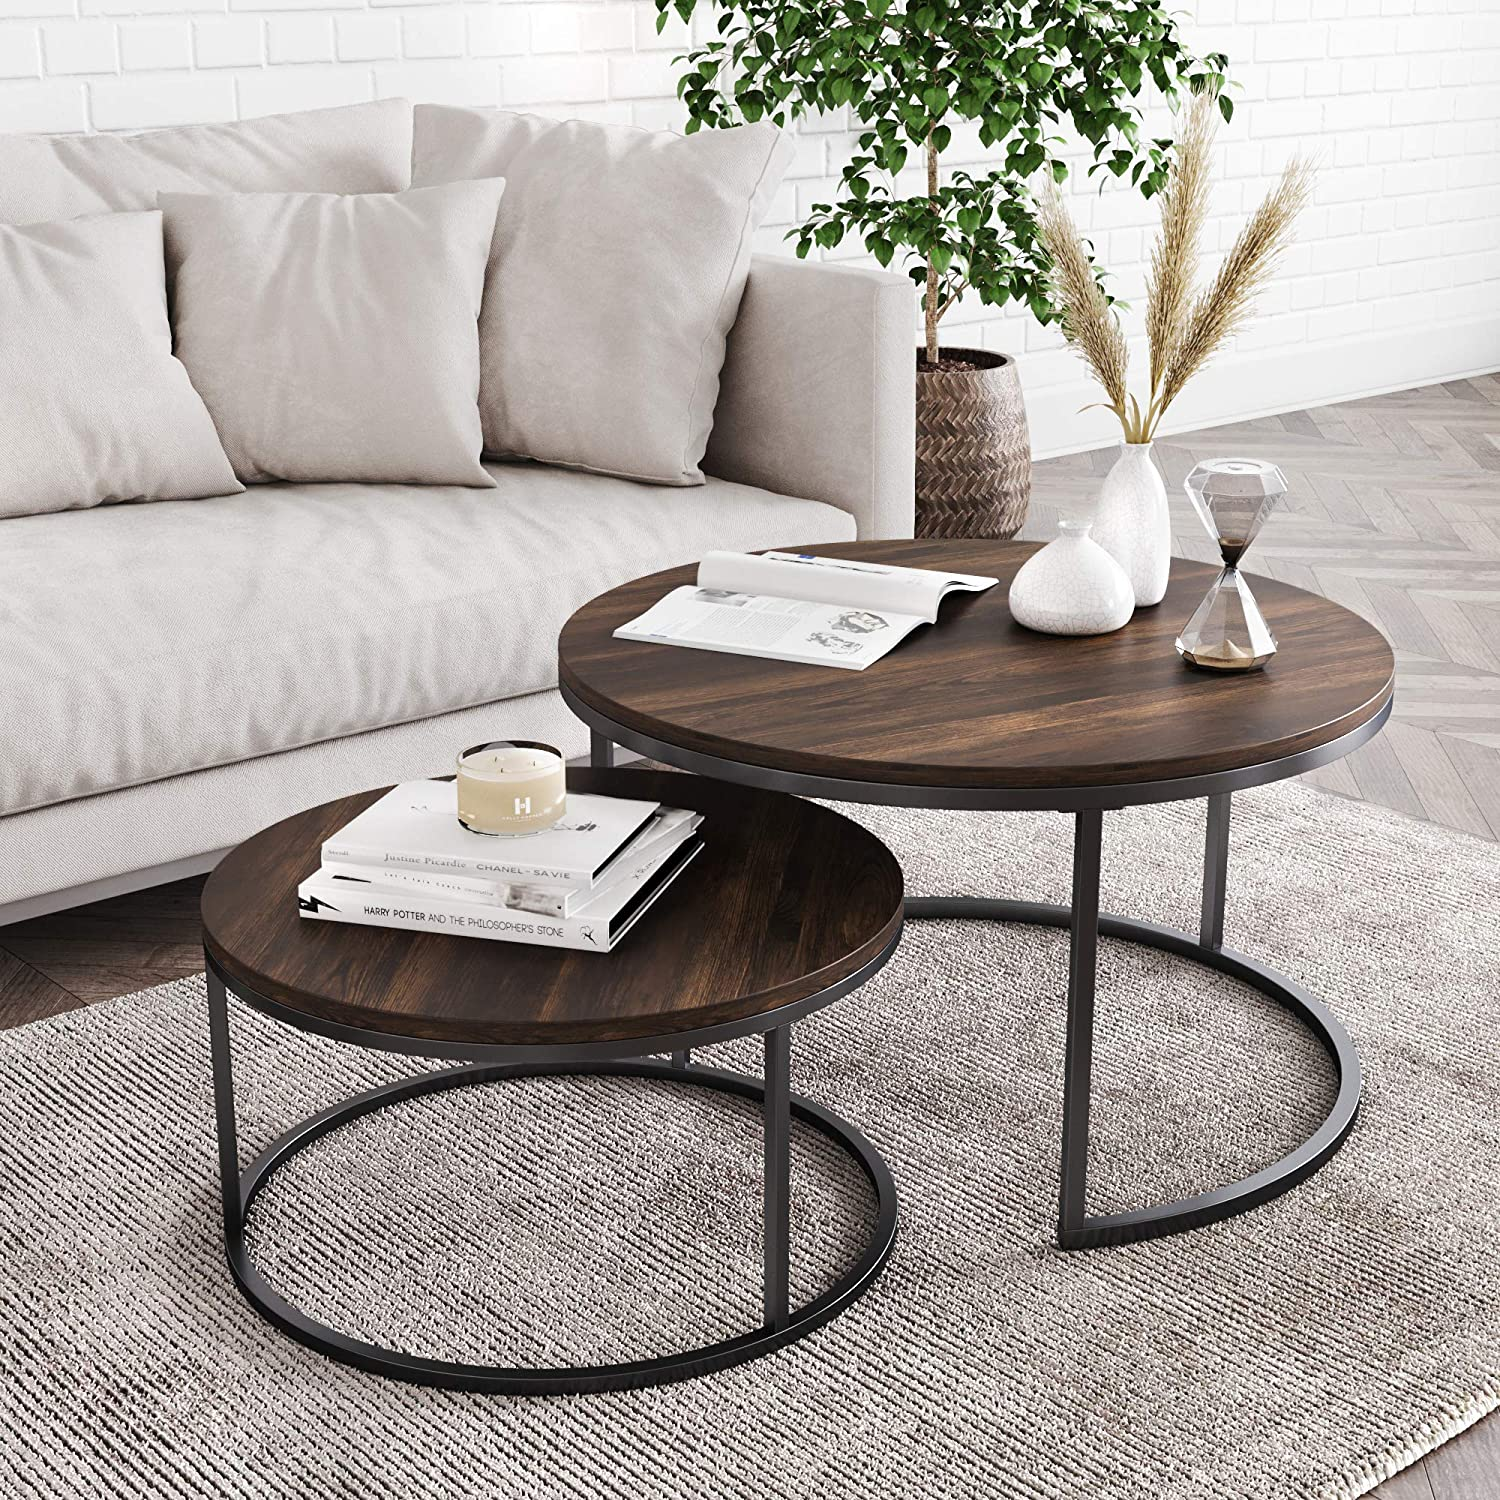 Nathan James 34001 Stella Round Modern Nesting Coffee Table Set Of 2 Stacking Living Room Accent Tables With An Industrial Wood Finish And Powder Coated Metal Frame Warm Nutmeg Matte Black Amazon Ca Home